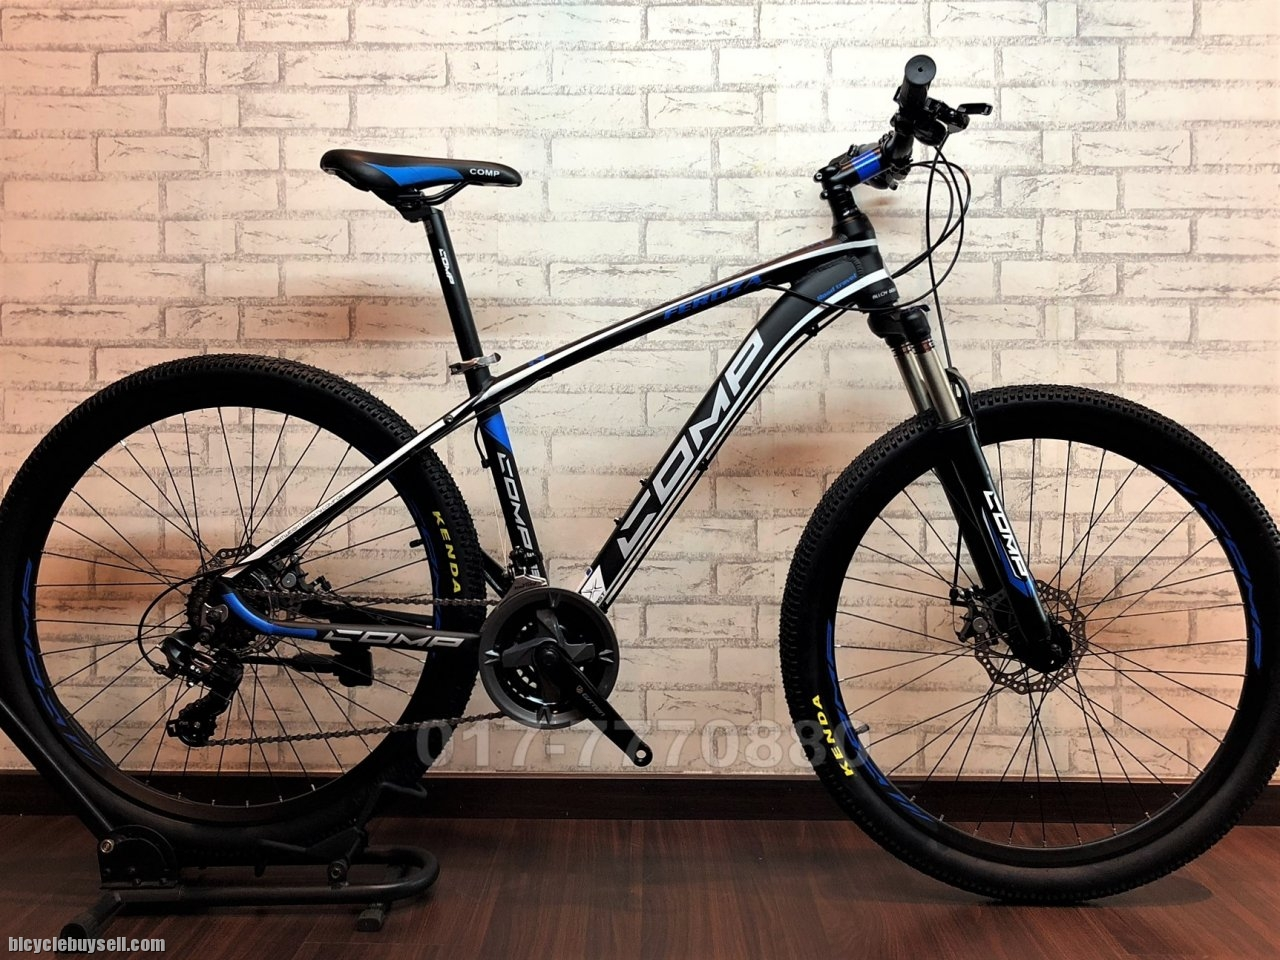 2019 COMP MTB 24 SPEED ALTUS SHIMANO WITH LOCKOUT FORK